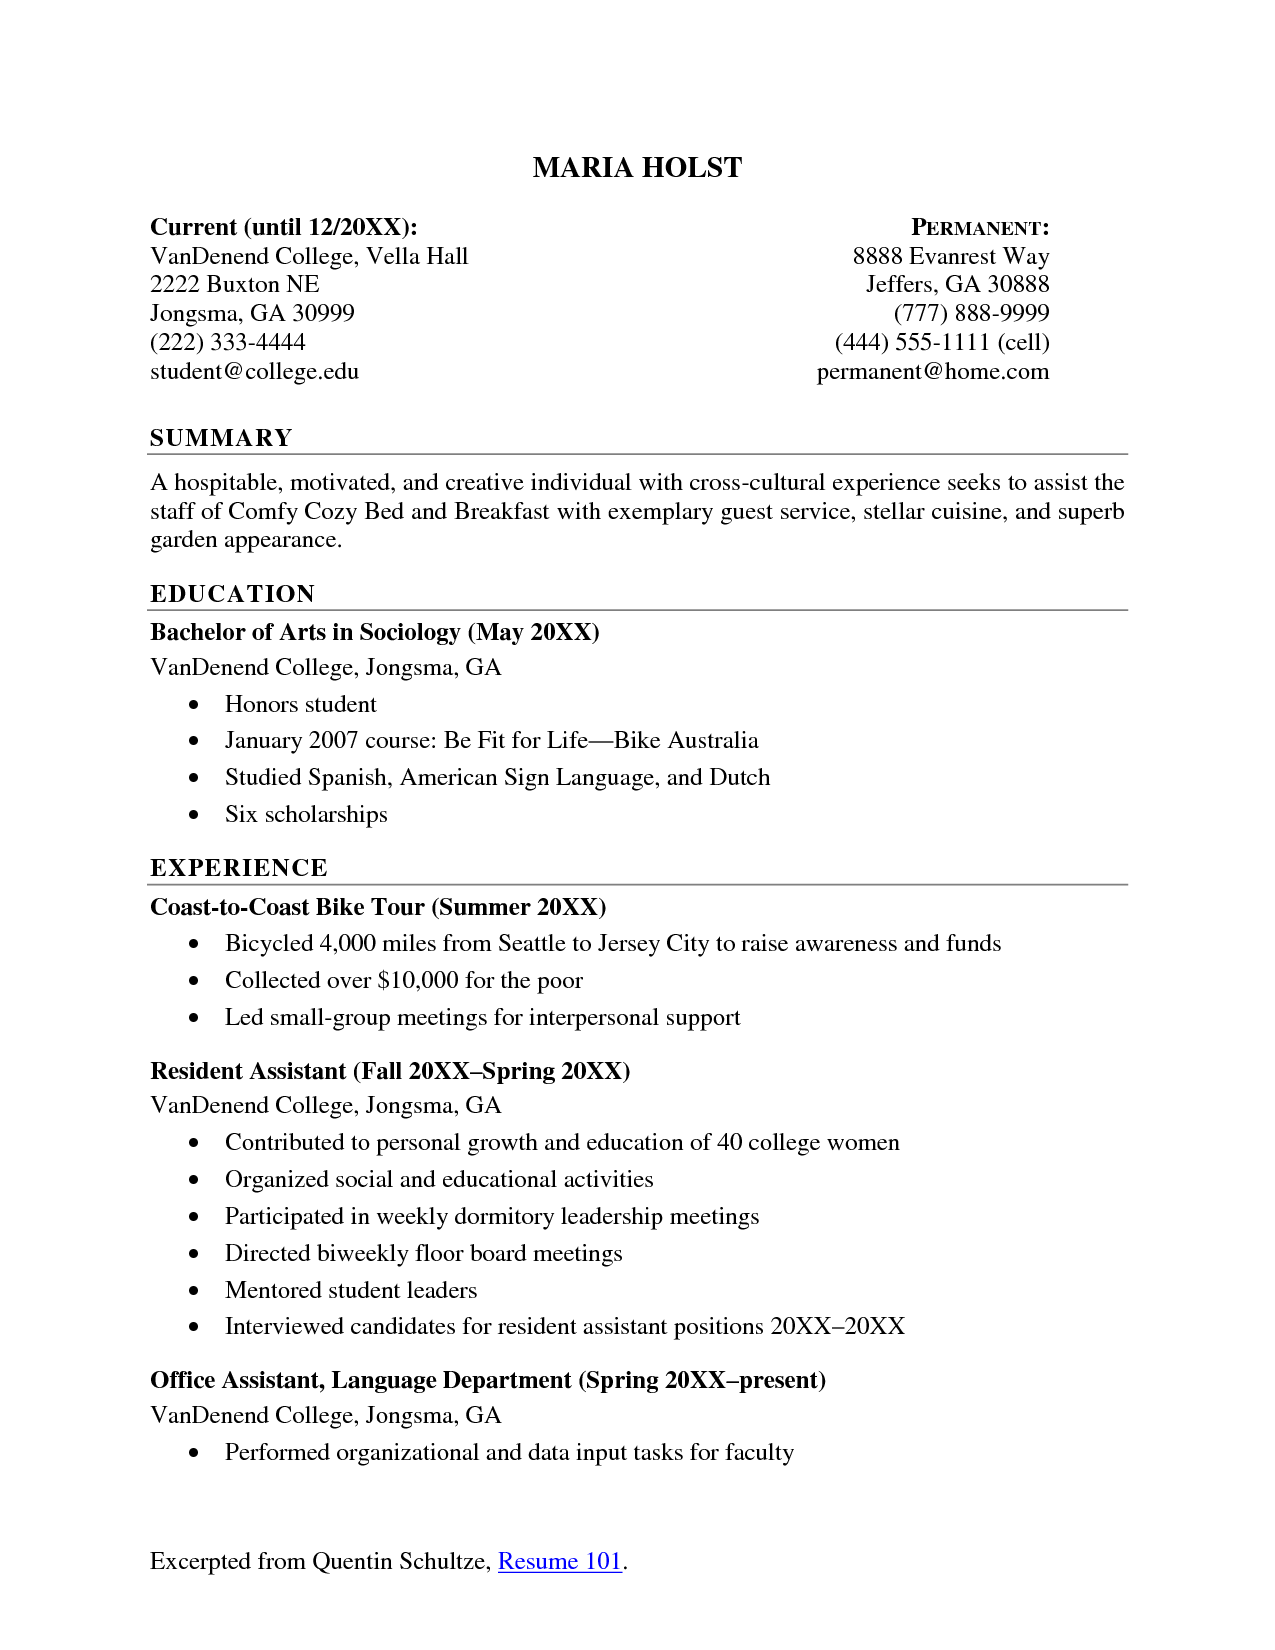 college freshman resume Resume tips for freshmen what is a resume high school information on the resume while transitioning into their college experience.